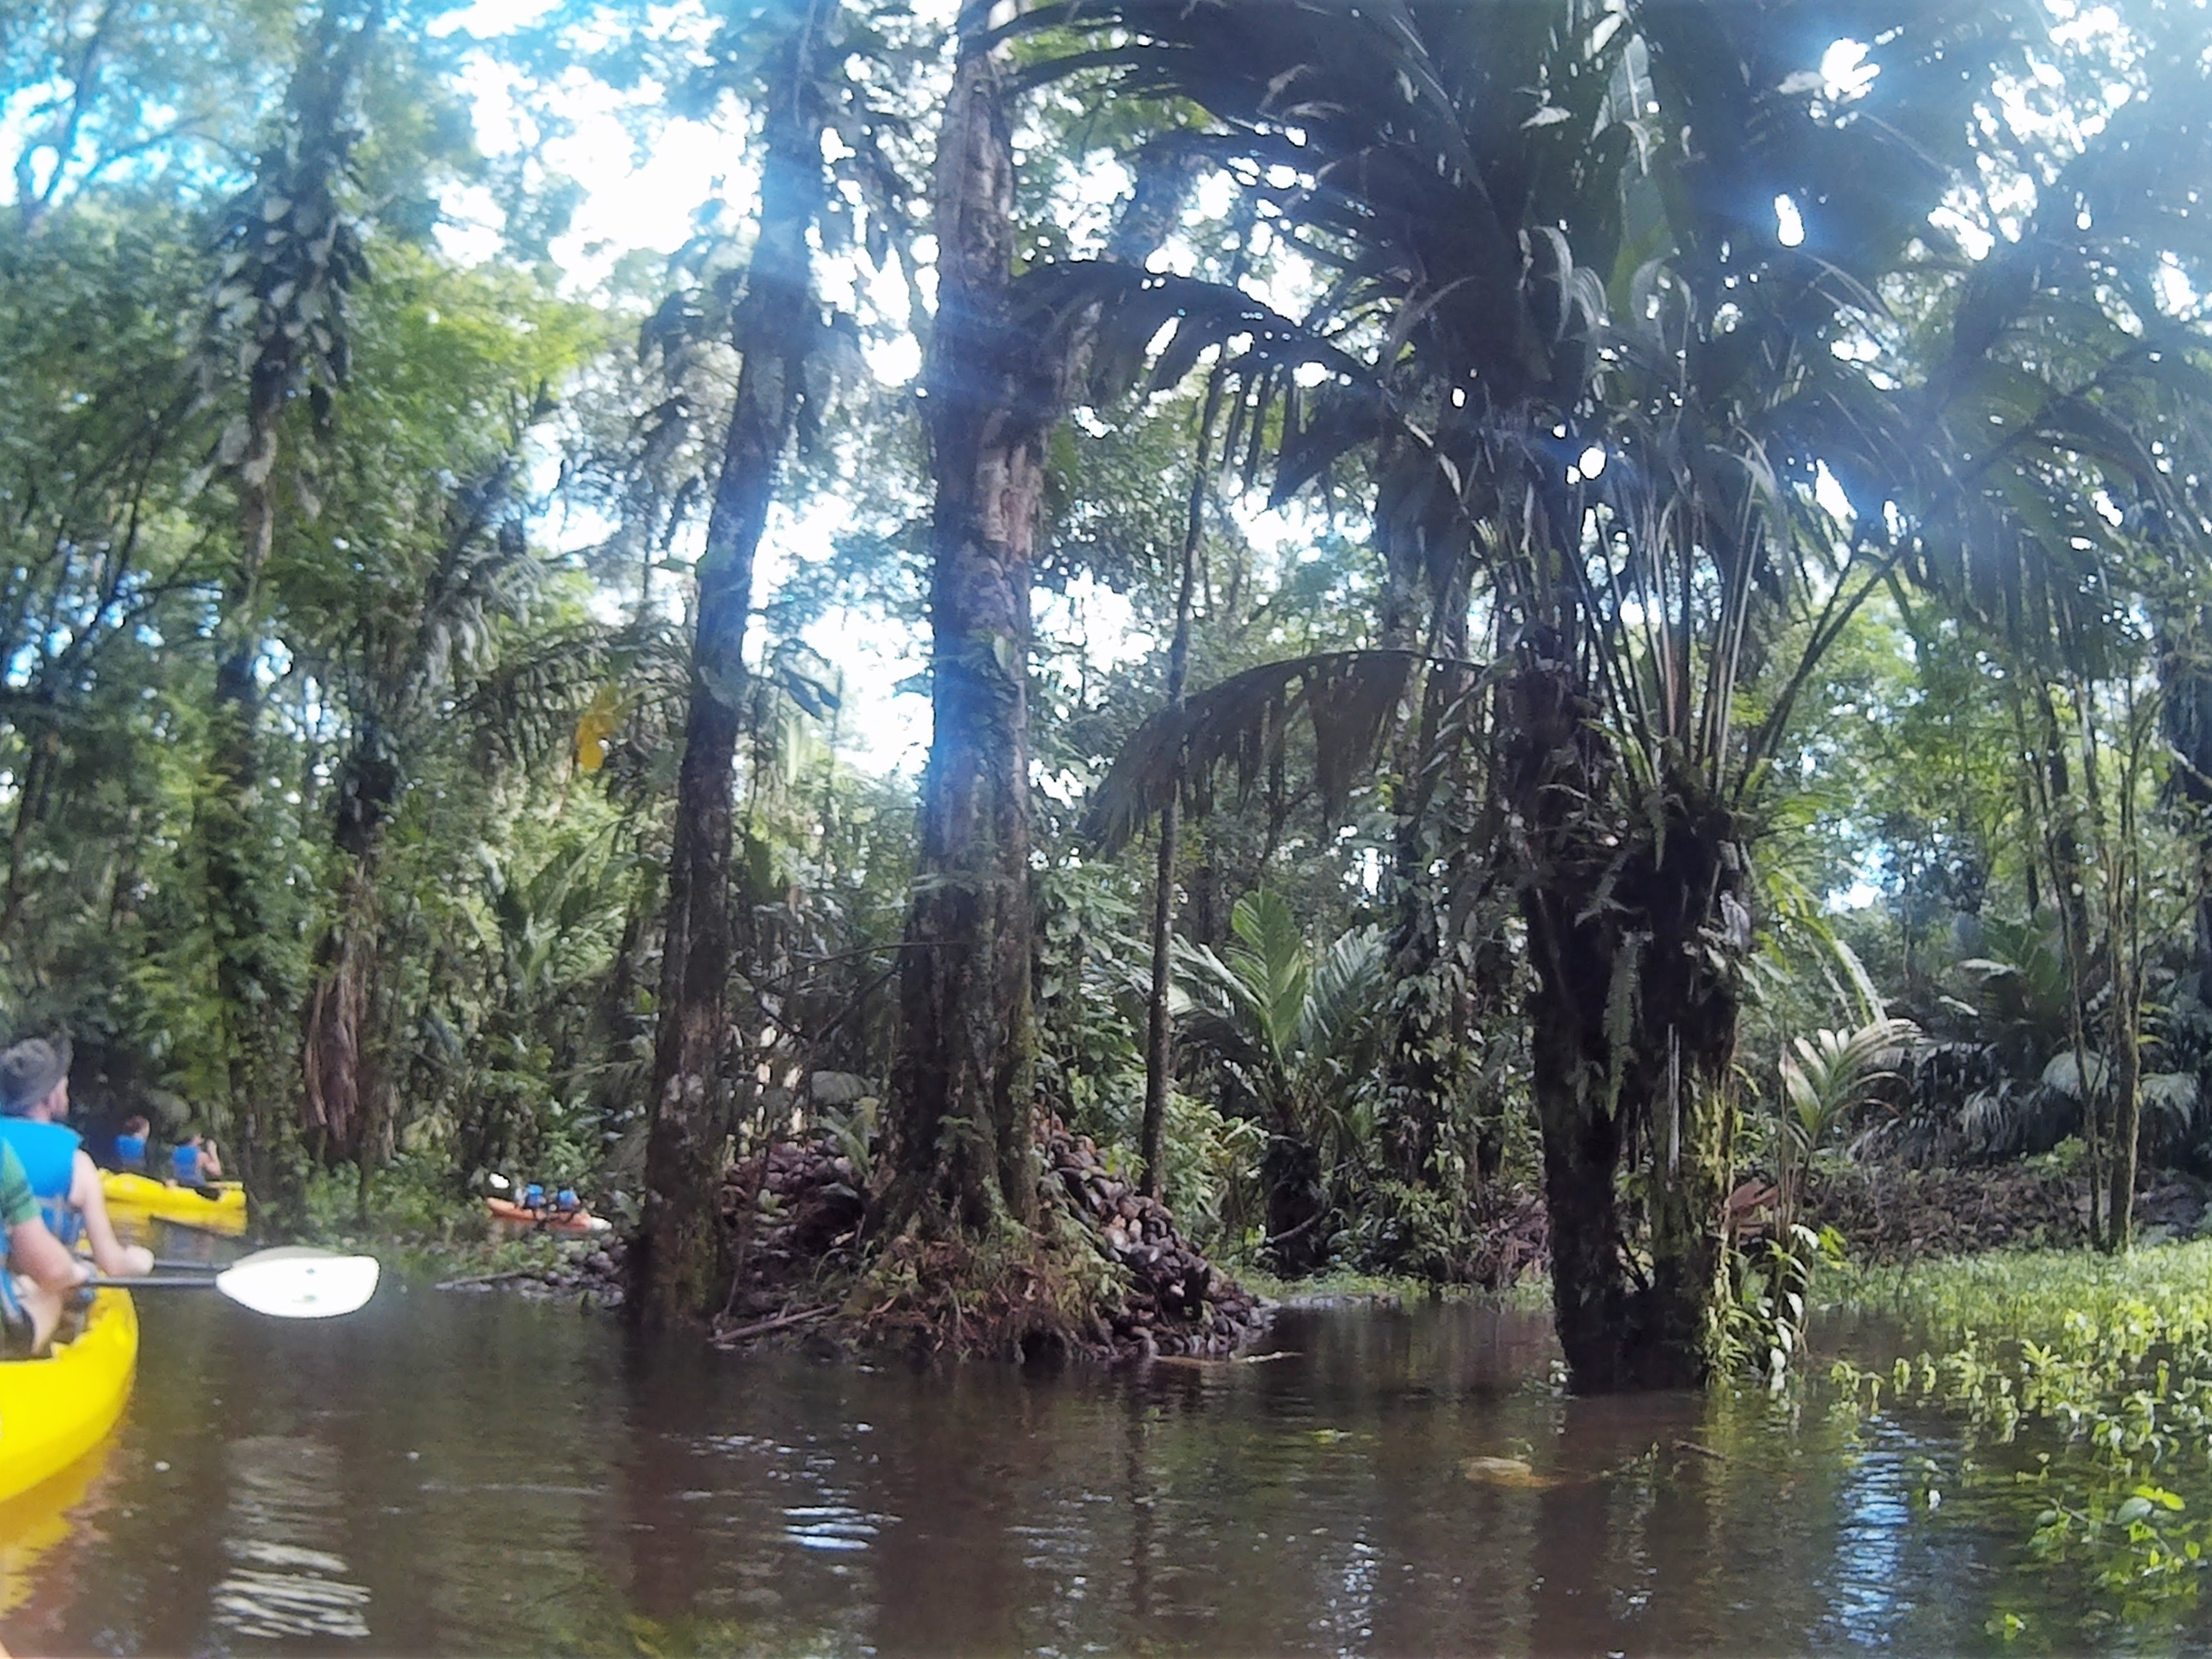 Top adventurous things to do in Costa Rica - kayaking down the narrow canals with jungle surroundings